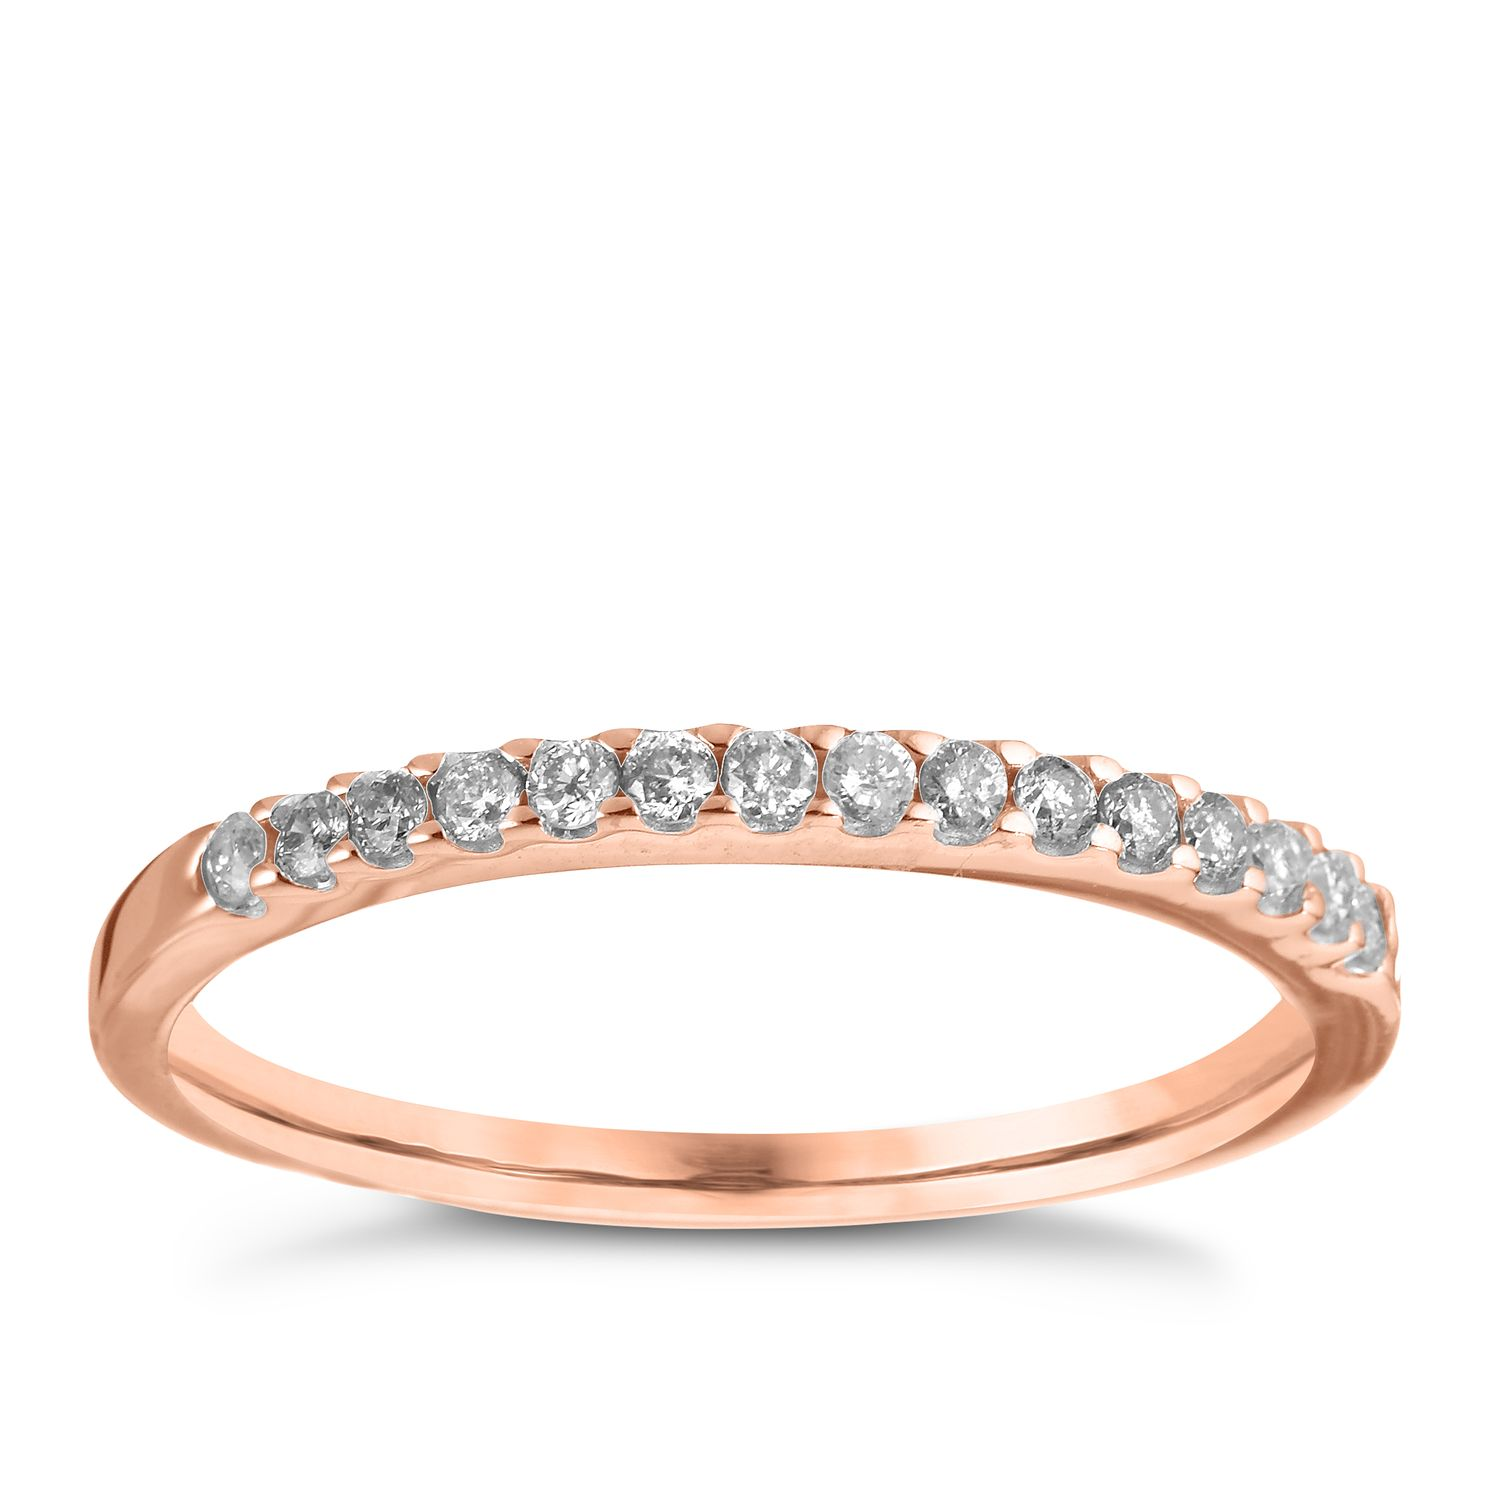 18ct Rose Gold Diamond Wedding Band - Product number 6169481